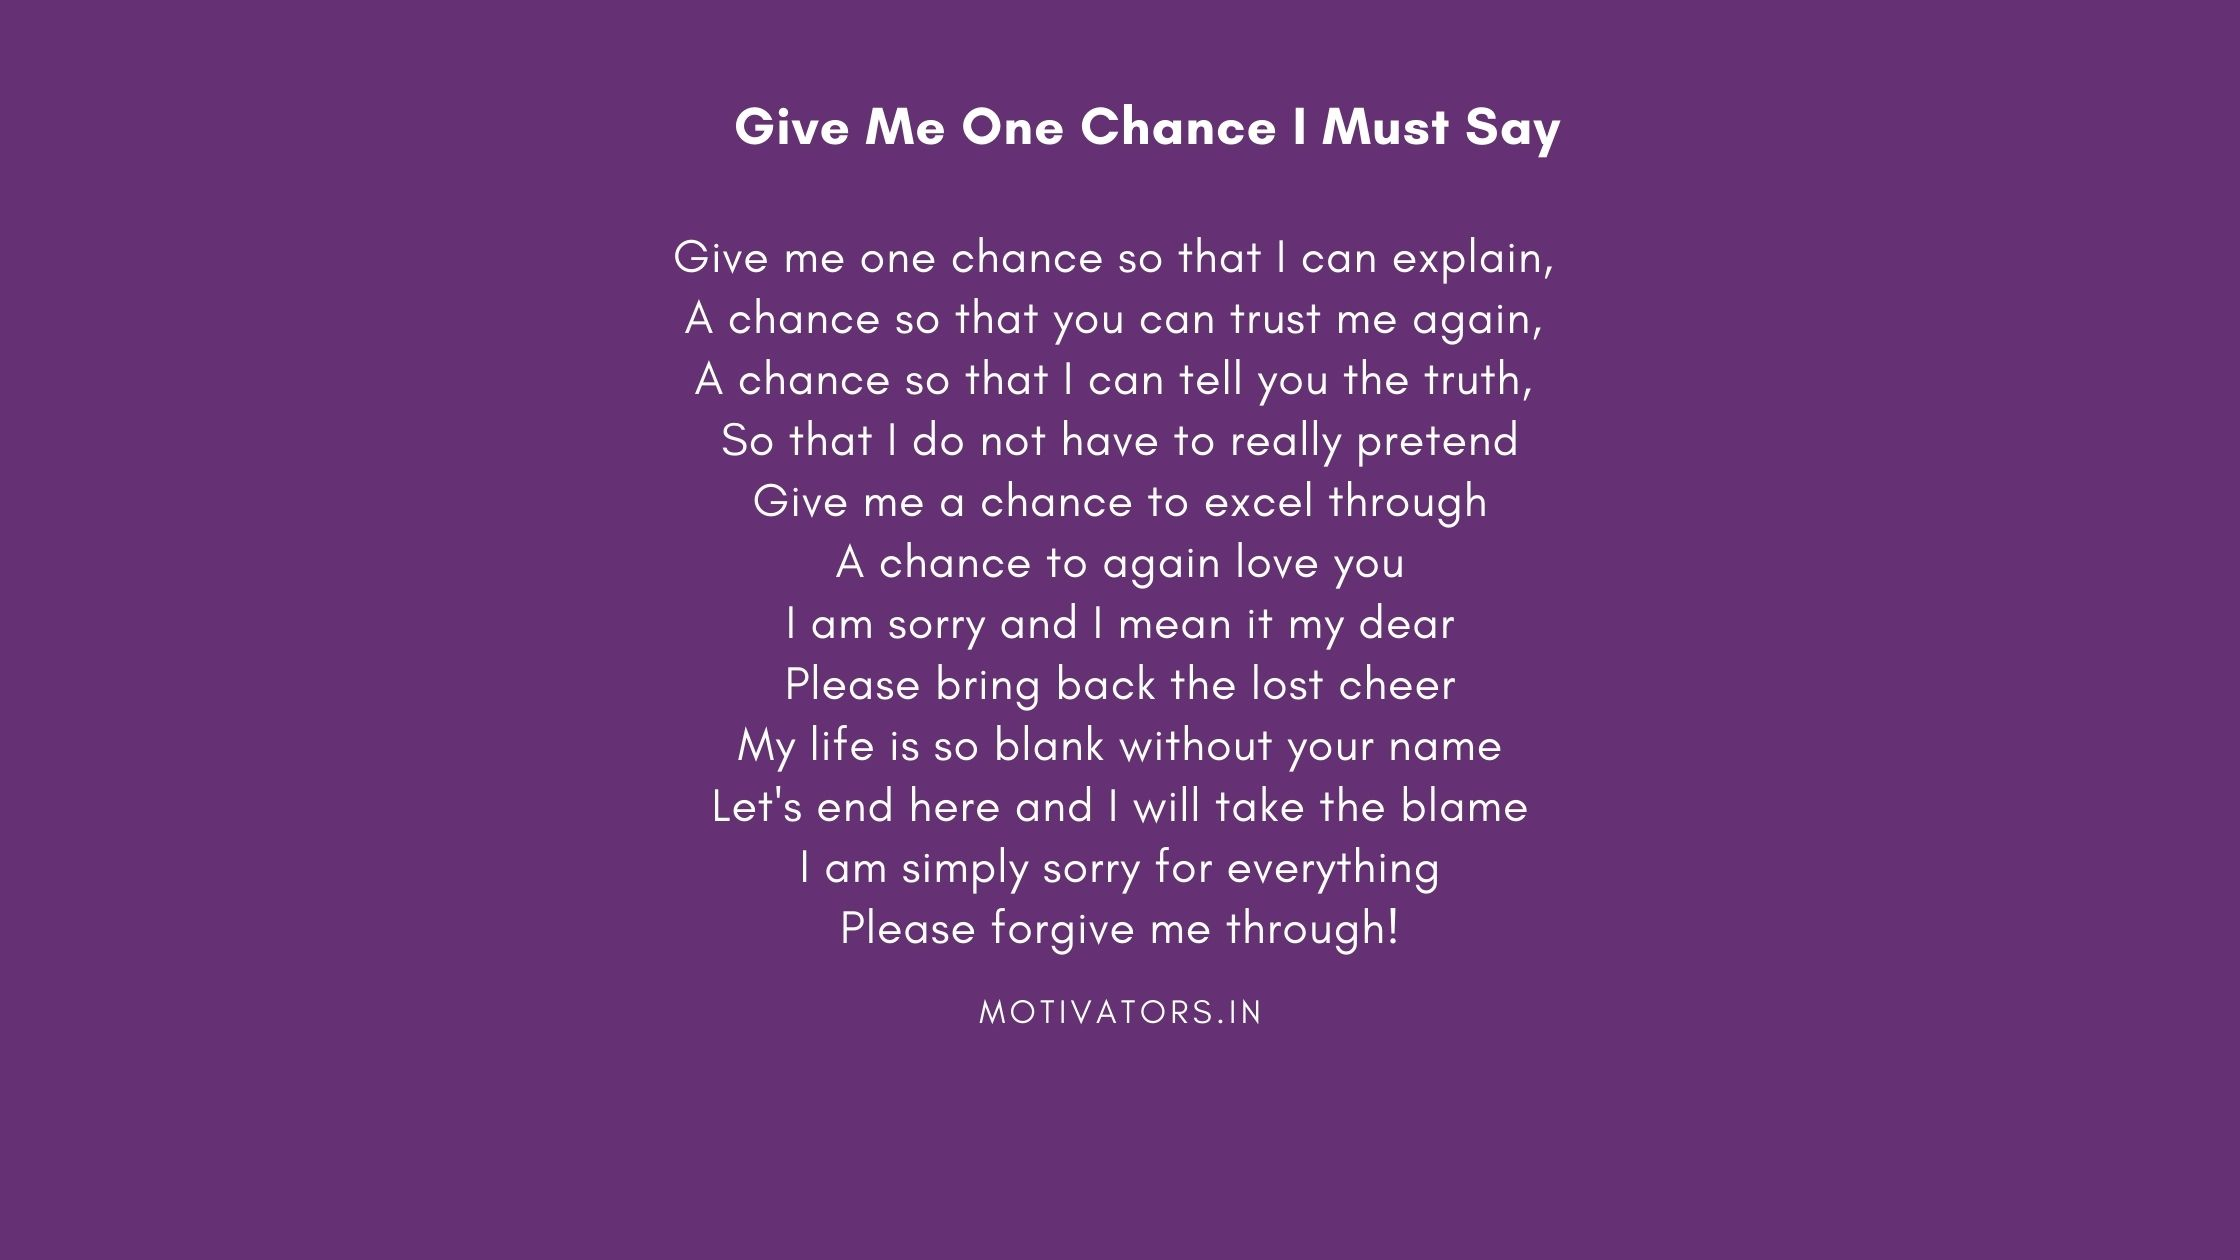 Give Me One Chance I Must Say